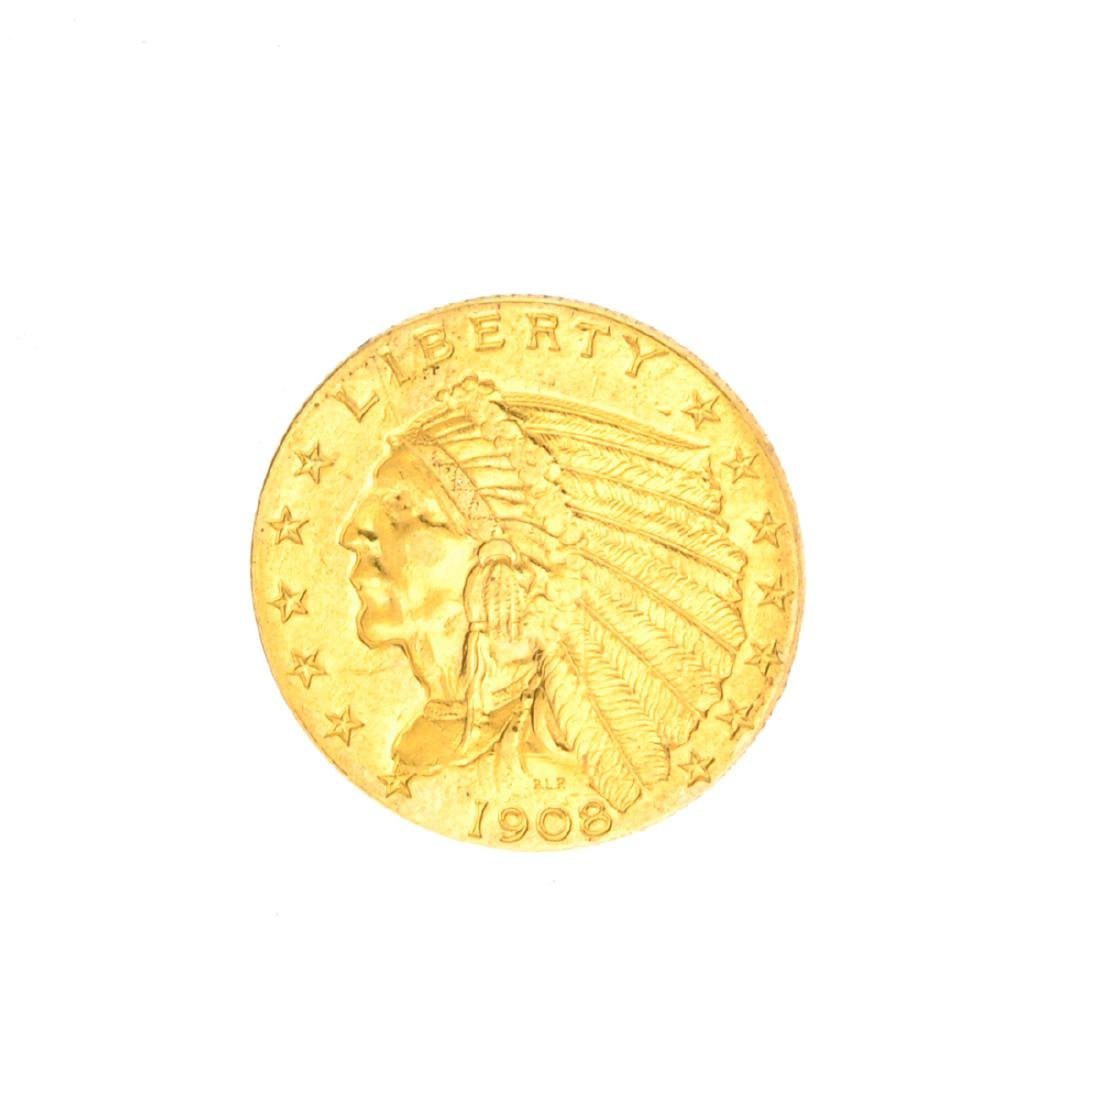 Very Rare 1908 $2.50 U.S. Indian Head Gold Coin Great